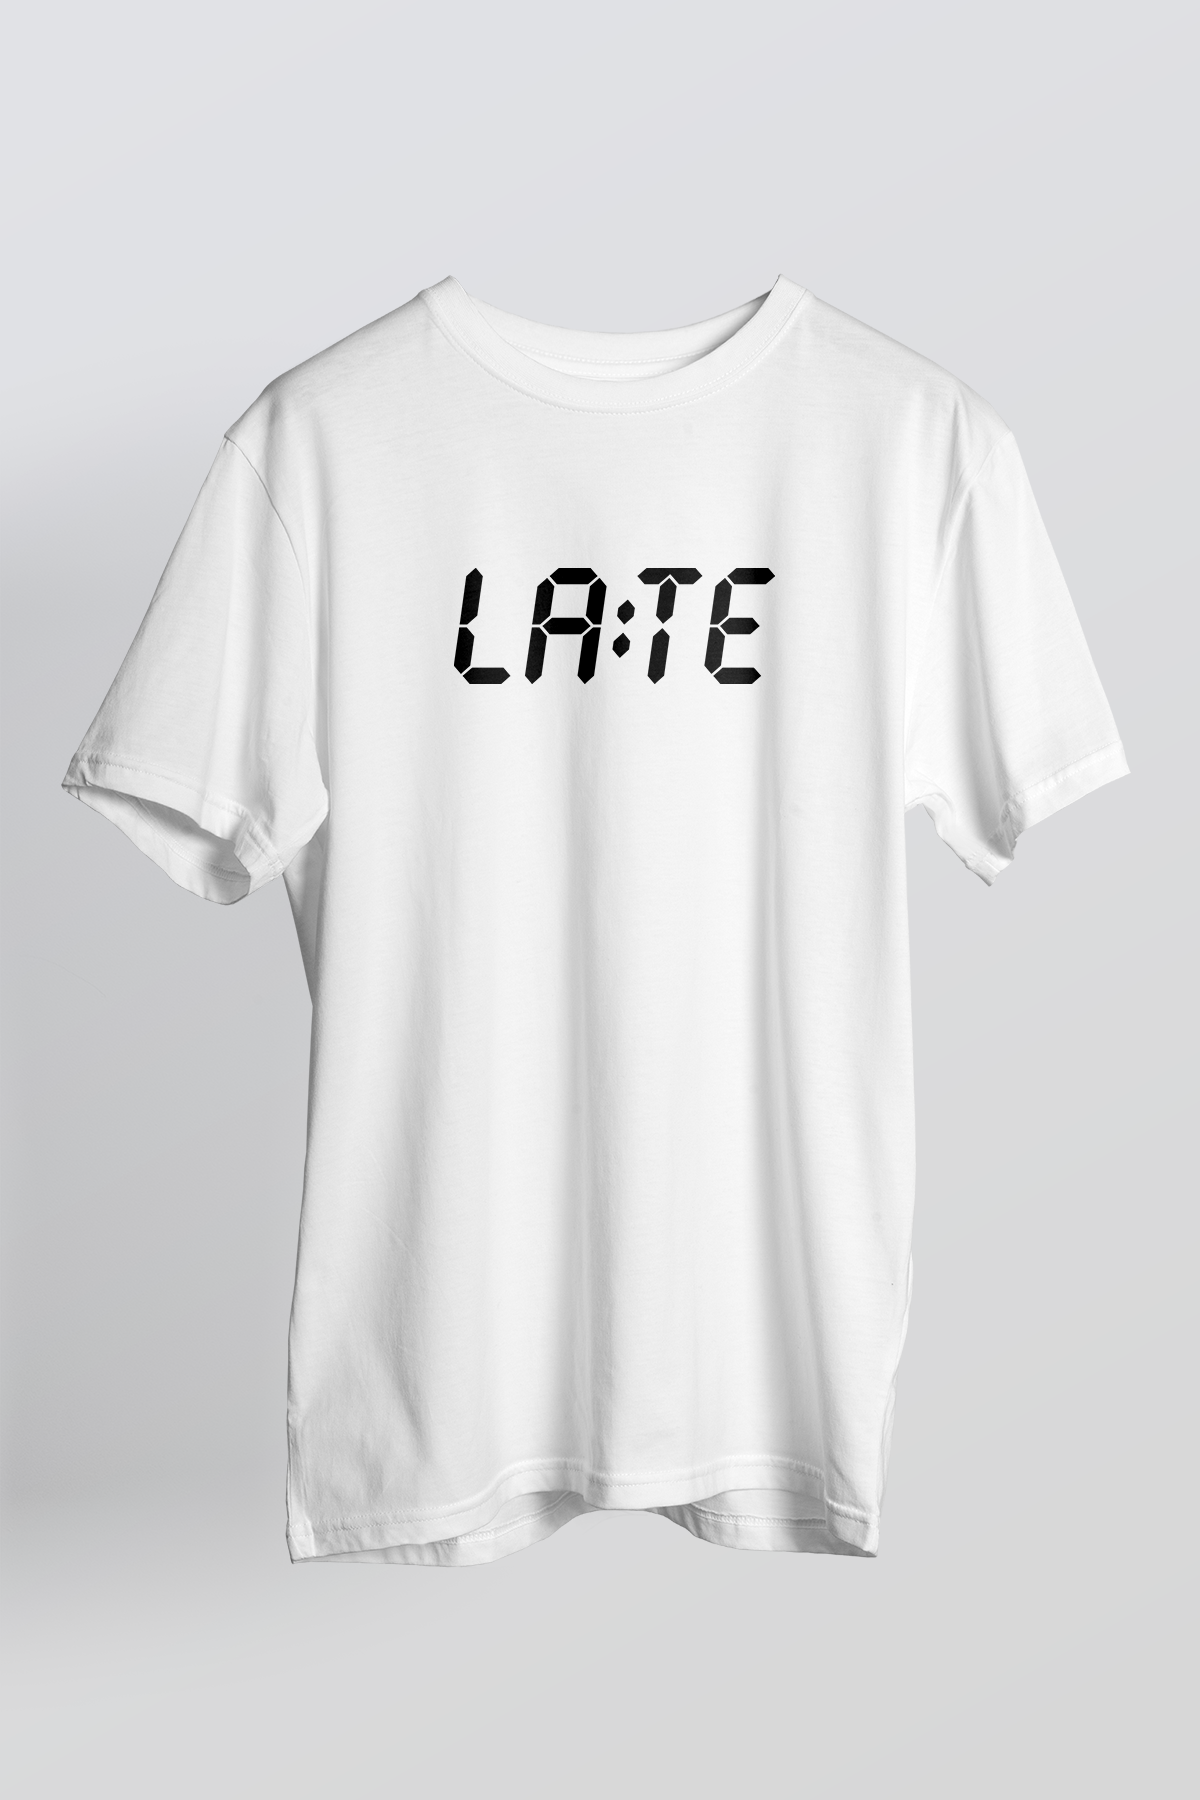 LATE - T-Shirt